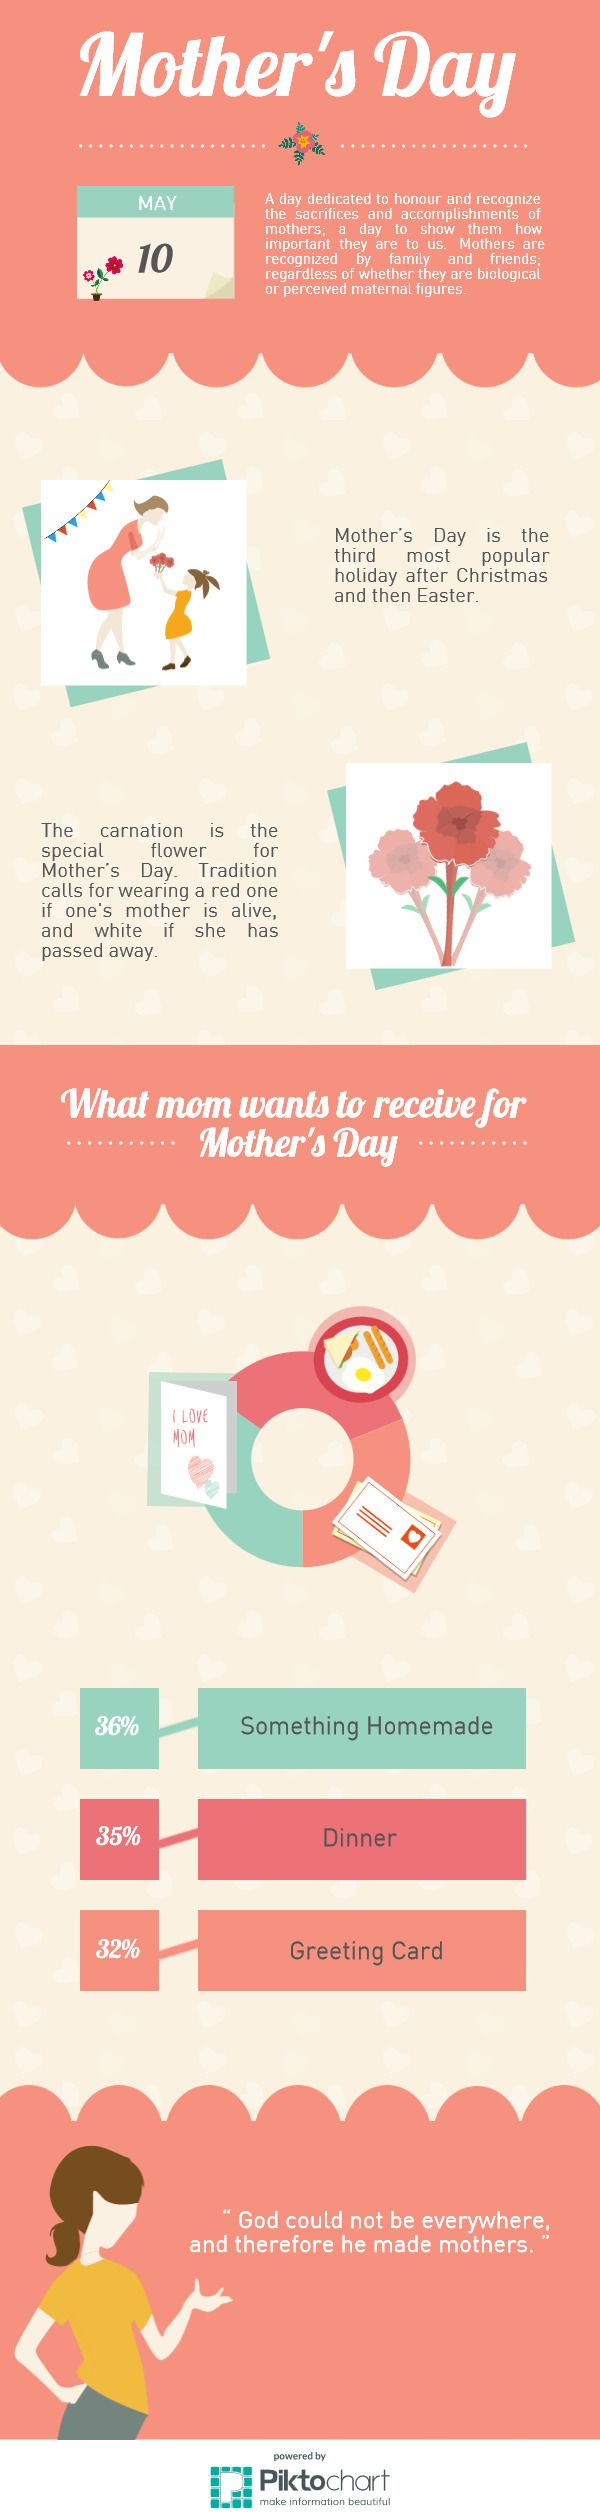 Mothersday | @Piktochart Infographic